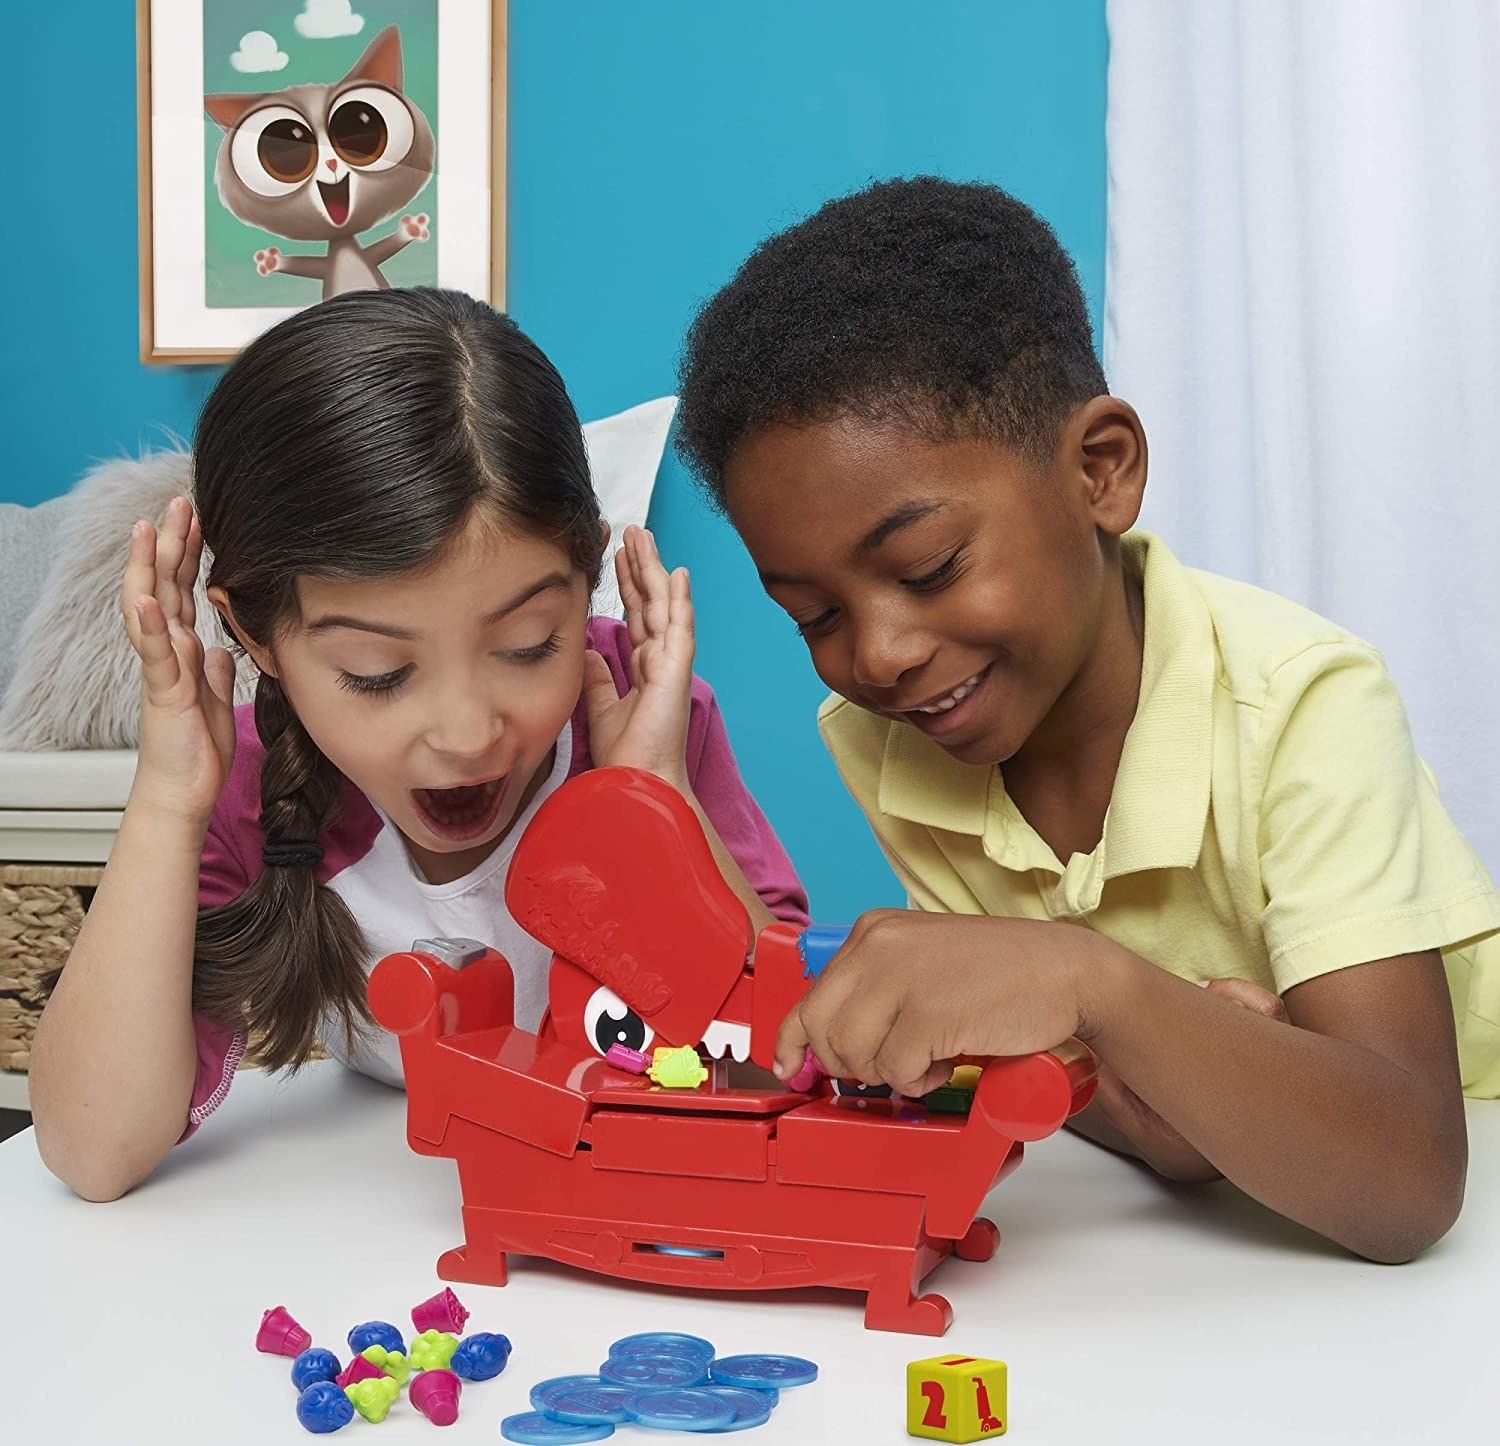 Two child models playing with red plastic couch game